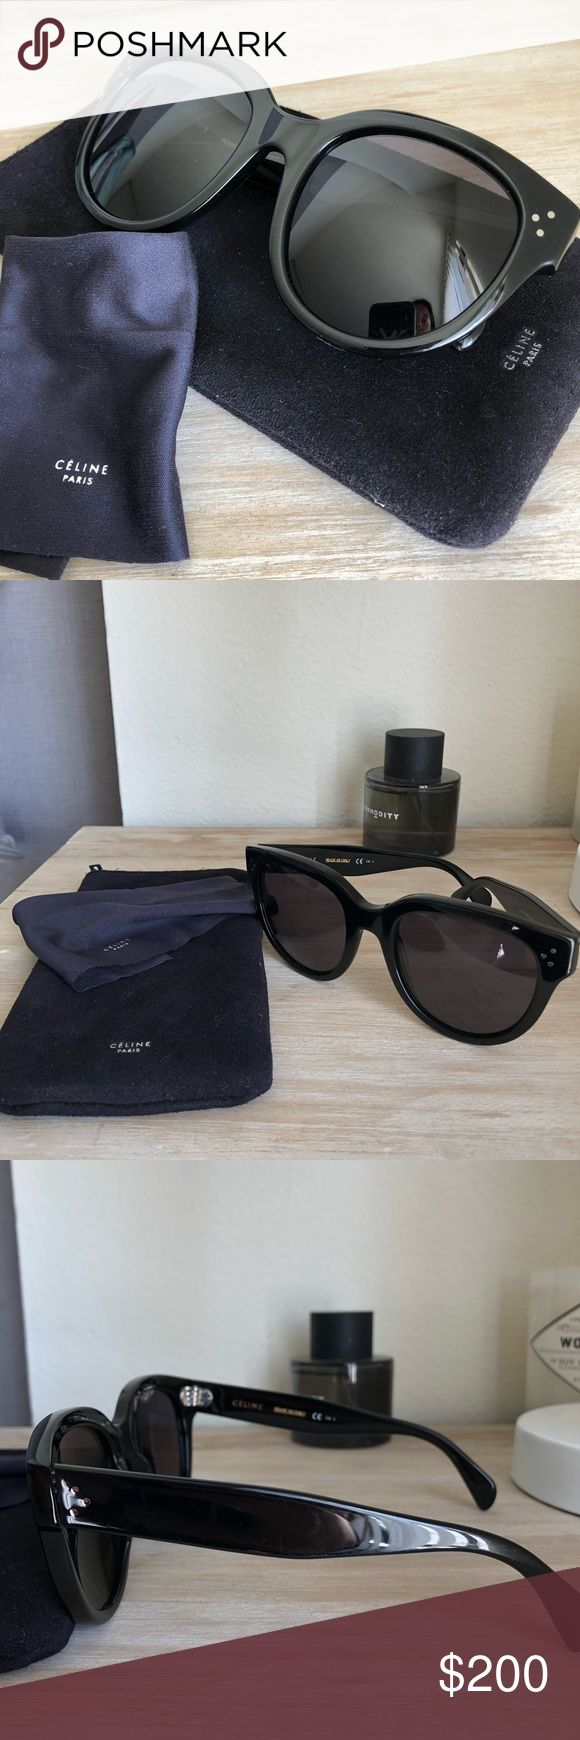 Celine Audrey Sunglasses in Black Celine Audrey sunglasses in black. These are the Audrey and not Baby Audrey. In good used condition, a few hairline scratches on lens and frame. Price is negotiable but no lowballs. Comes with original case and cleaning cloth! Celine Accessories Sunglasses